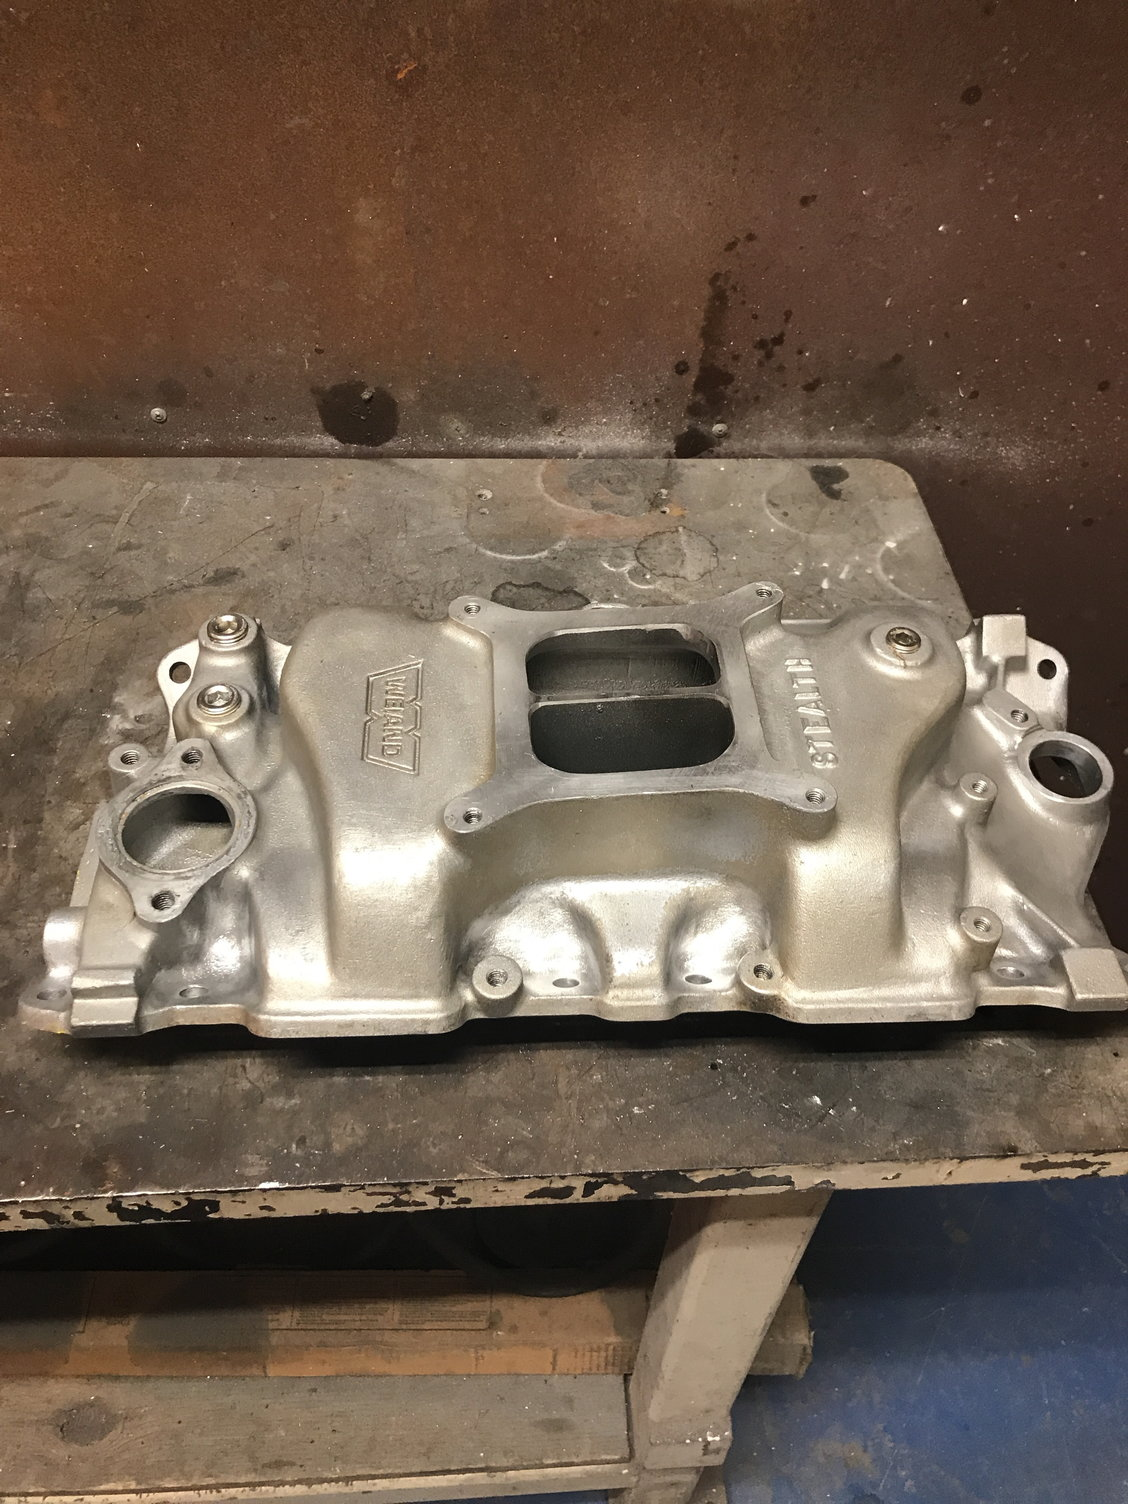 TBI 350 build advice - Third Generation F-Body Message Boards